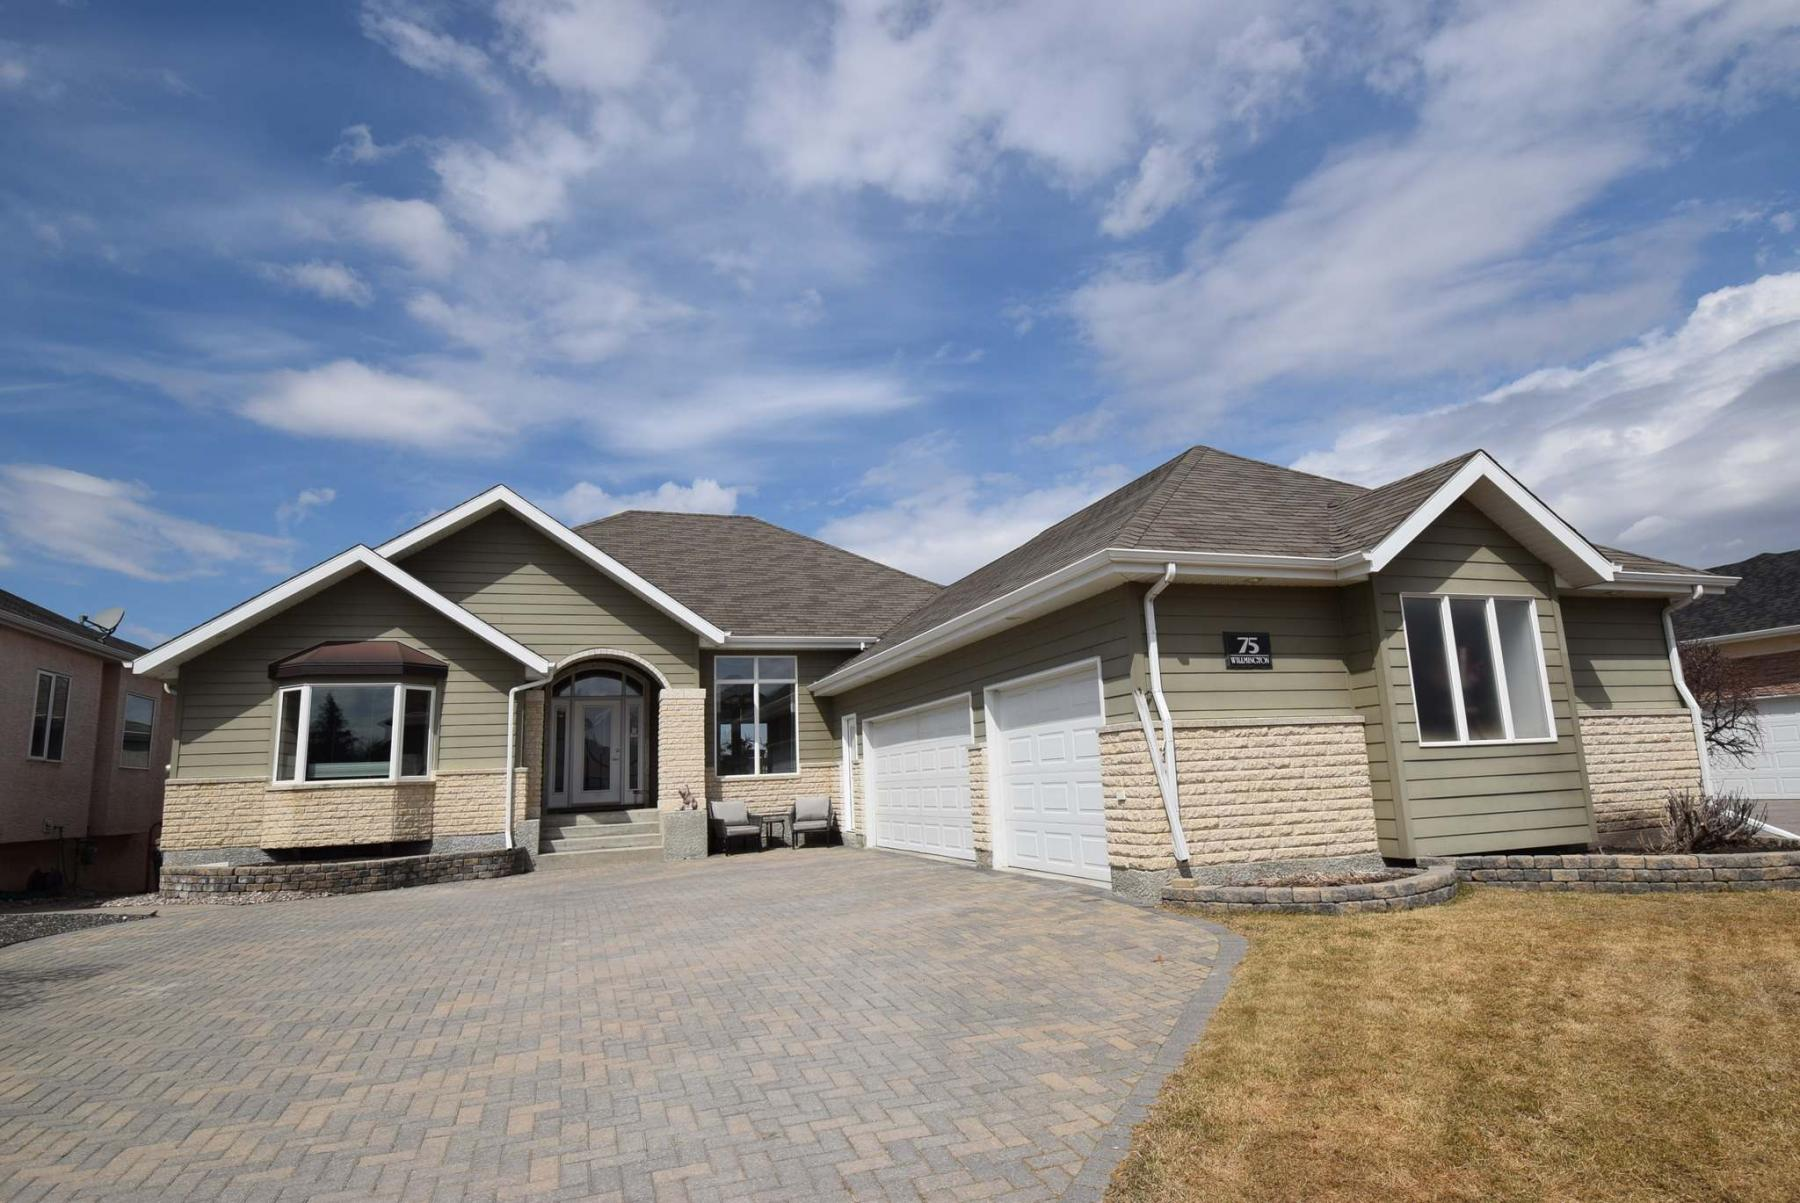 <p>Photos by Todd Lewys / Winnipeg Free Press</p><p>No expense was spared in the design and construction of this stylish bungalow, which was custom-built by Character Homes in 2004.</p></p>